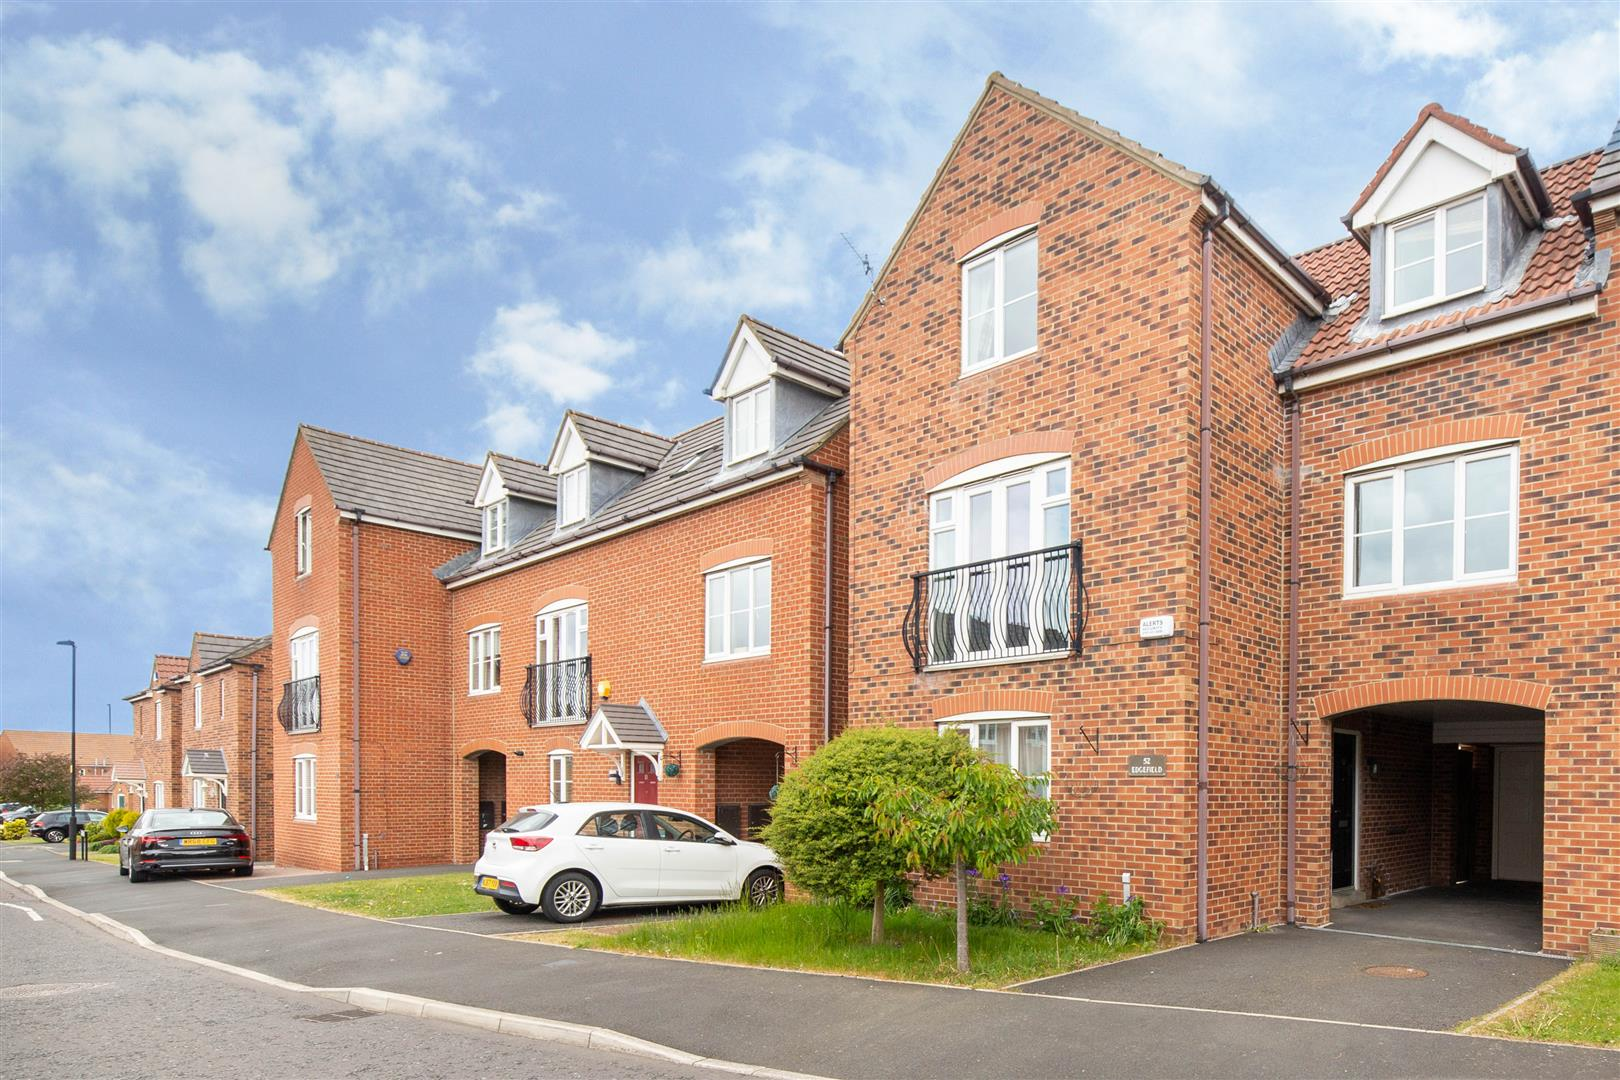 4 bed town house to rent in Newcastle Upon Tyne, NE27 0BT  - Property Image 1